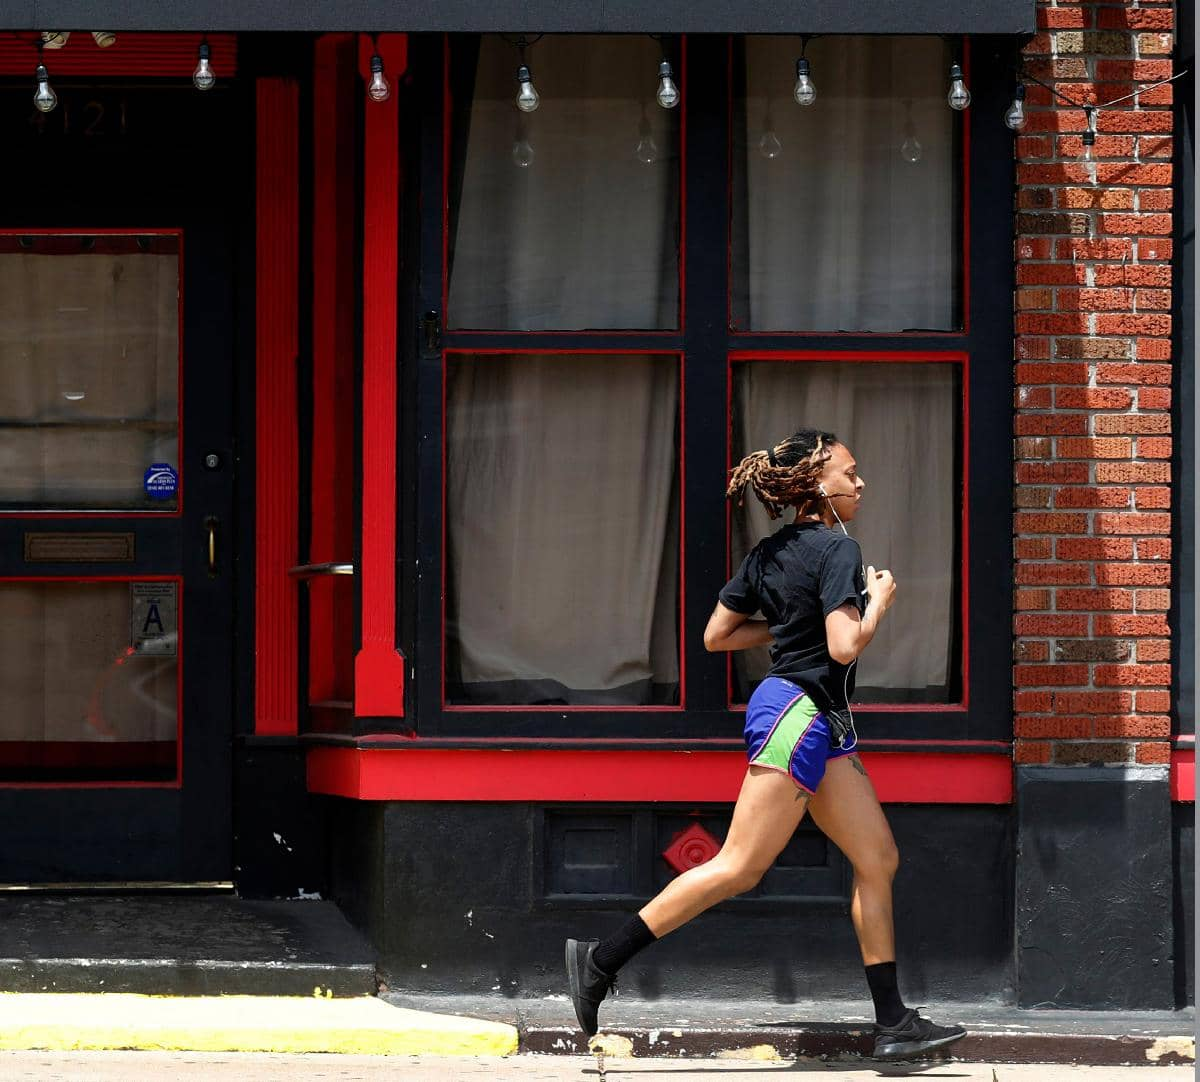 AMERICANS FINDING WAYS TO STAY ACTIVE WHILE KEEPING DISTANCE